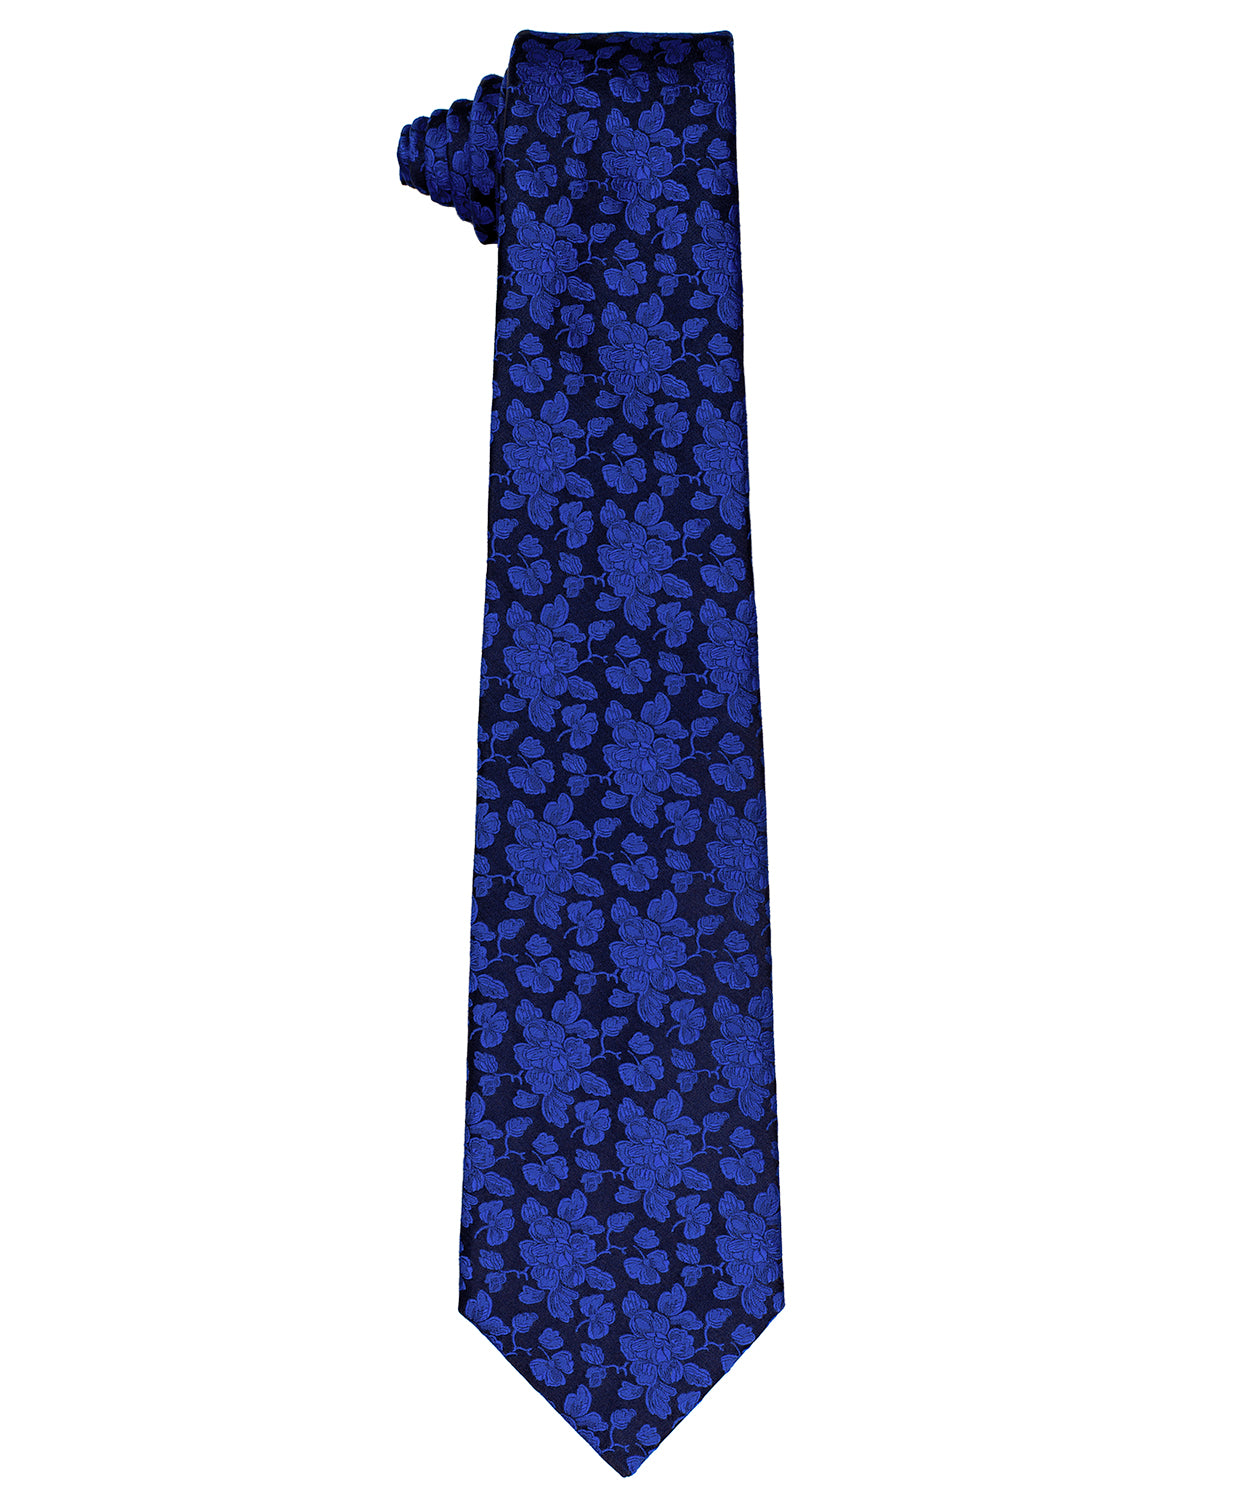 8.0cm Navy/Electric Blue Leaf Tie